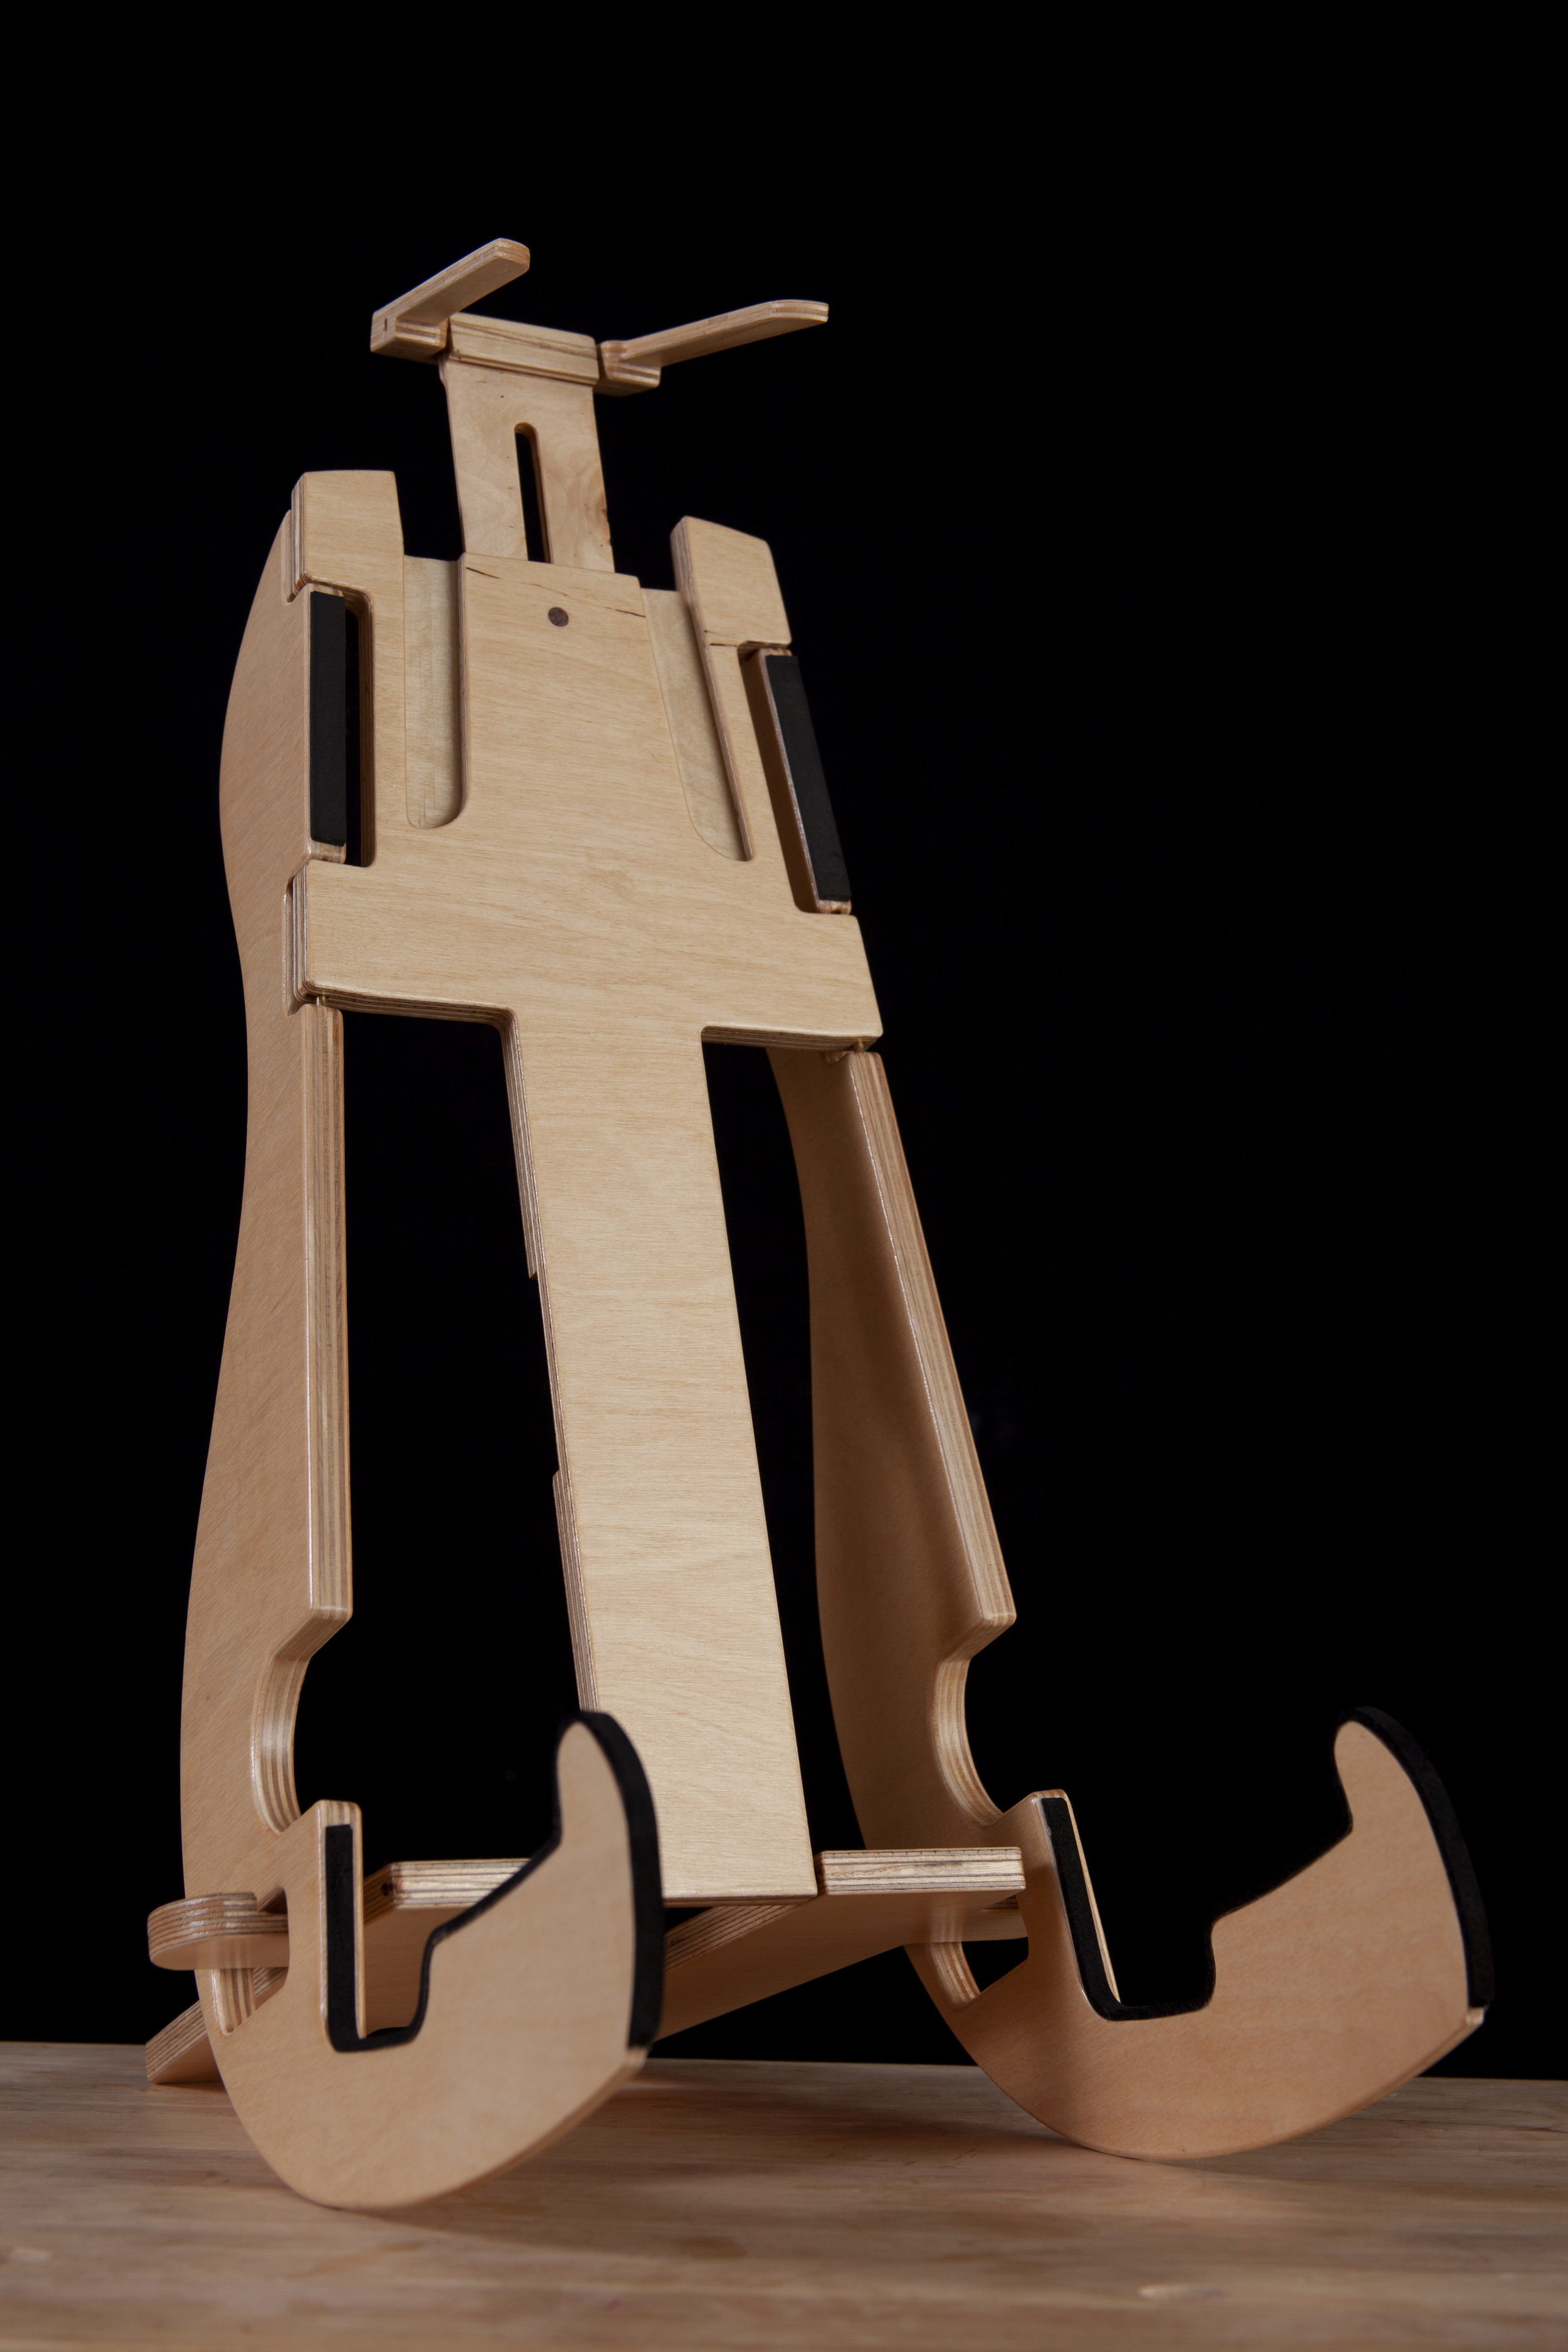 20 Inch tall K-Stand instrument stand holds full-sized Acoustic Guitar. Cutouts in lower arms allows stand to be used for Electric Guitars and Bass'.